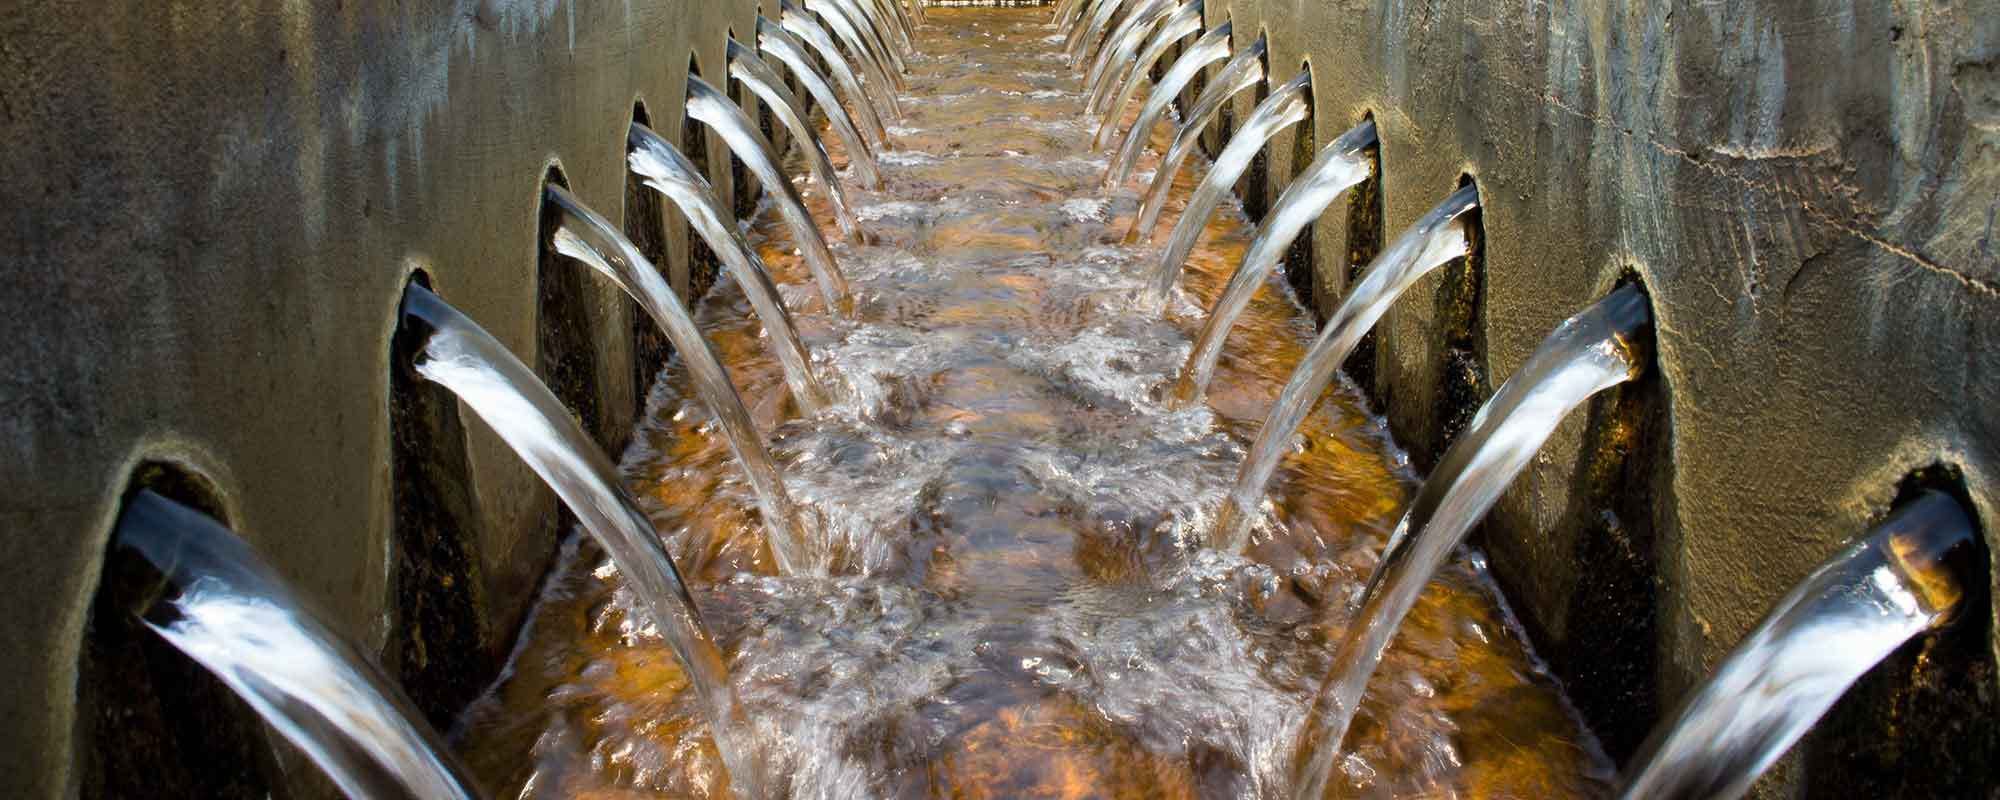 Water being pumped by heavy pumps